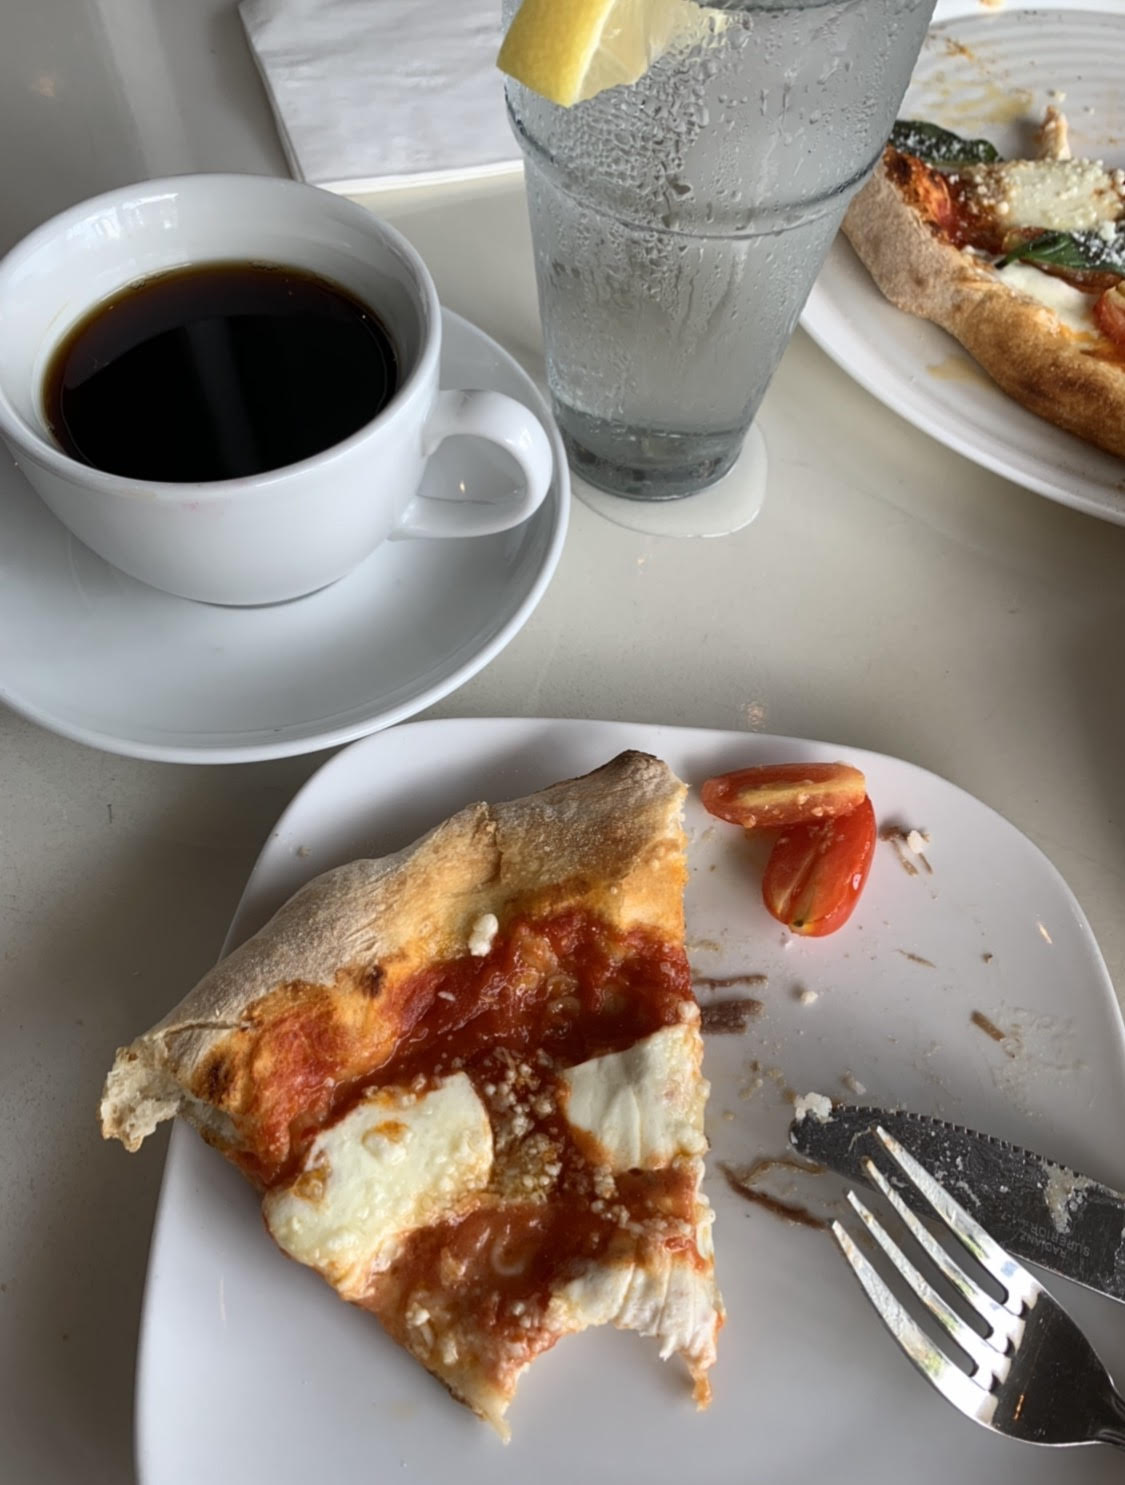 Just eating the fucking pizza and drinking the fucking coffee because I contain multitudes okay?